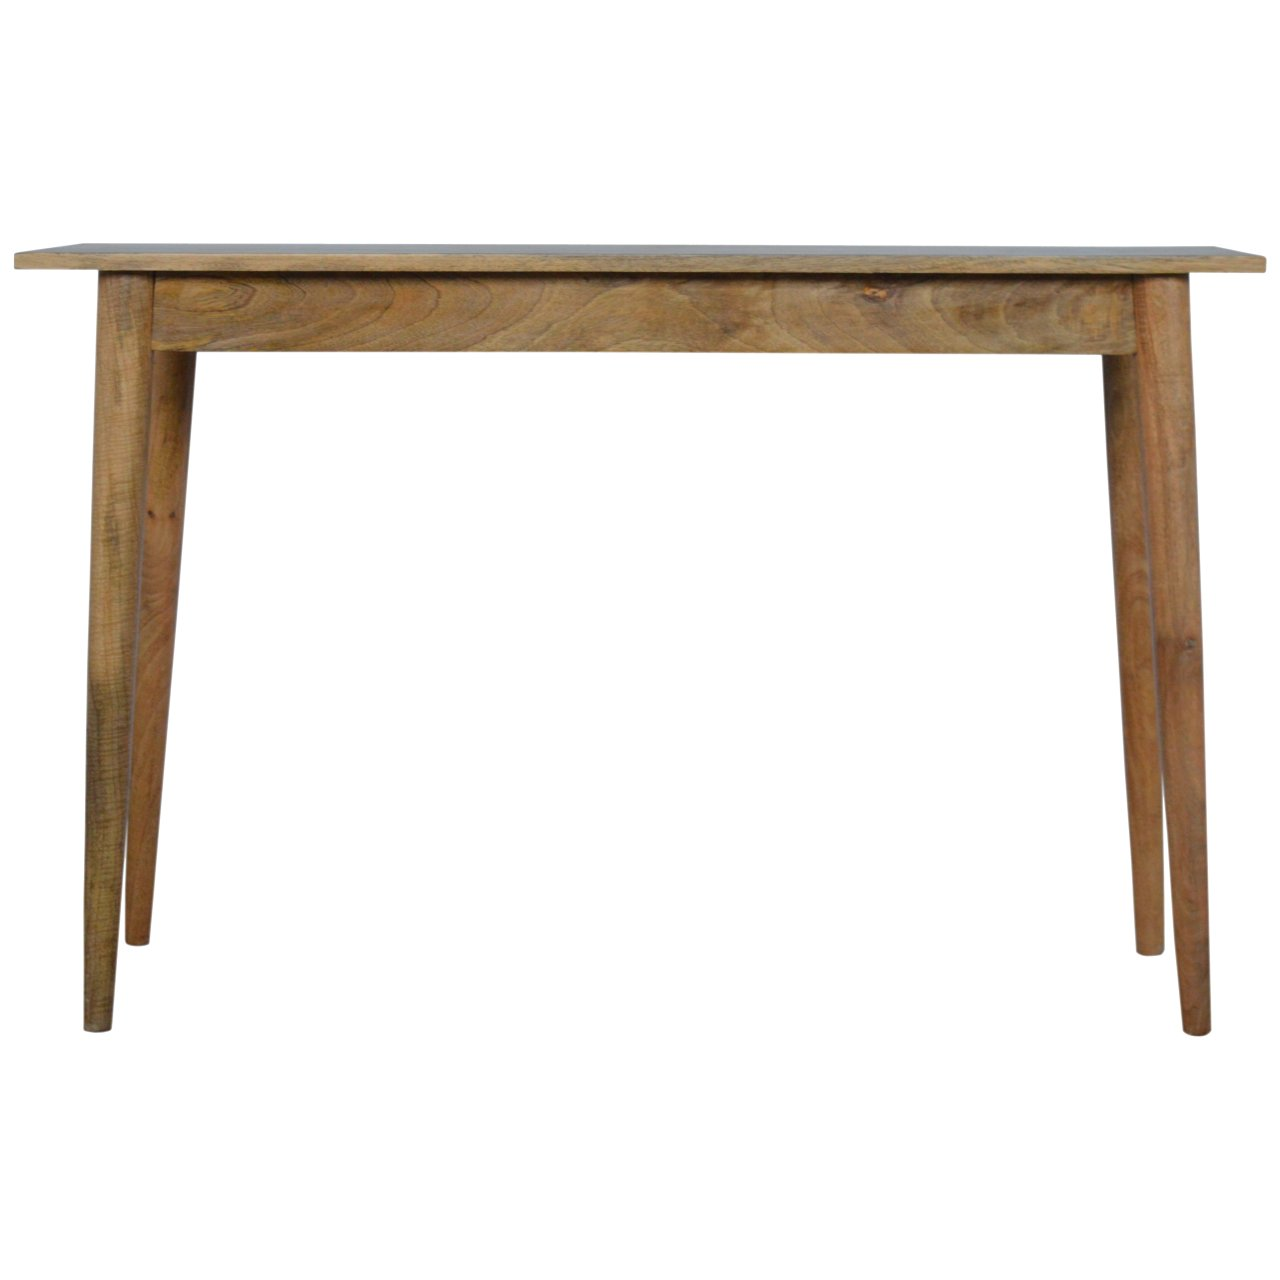 The Dane 2 Drawer Nordic Style Writing Desk Console Table